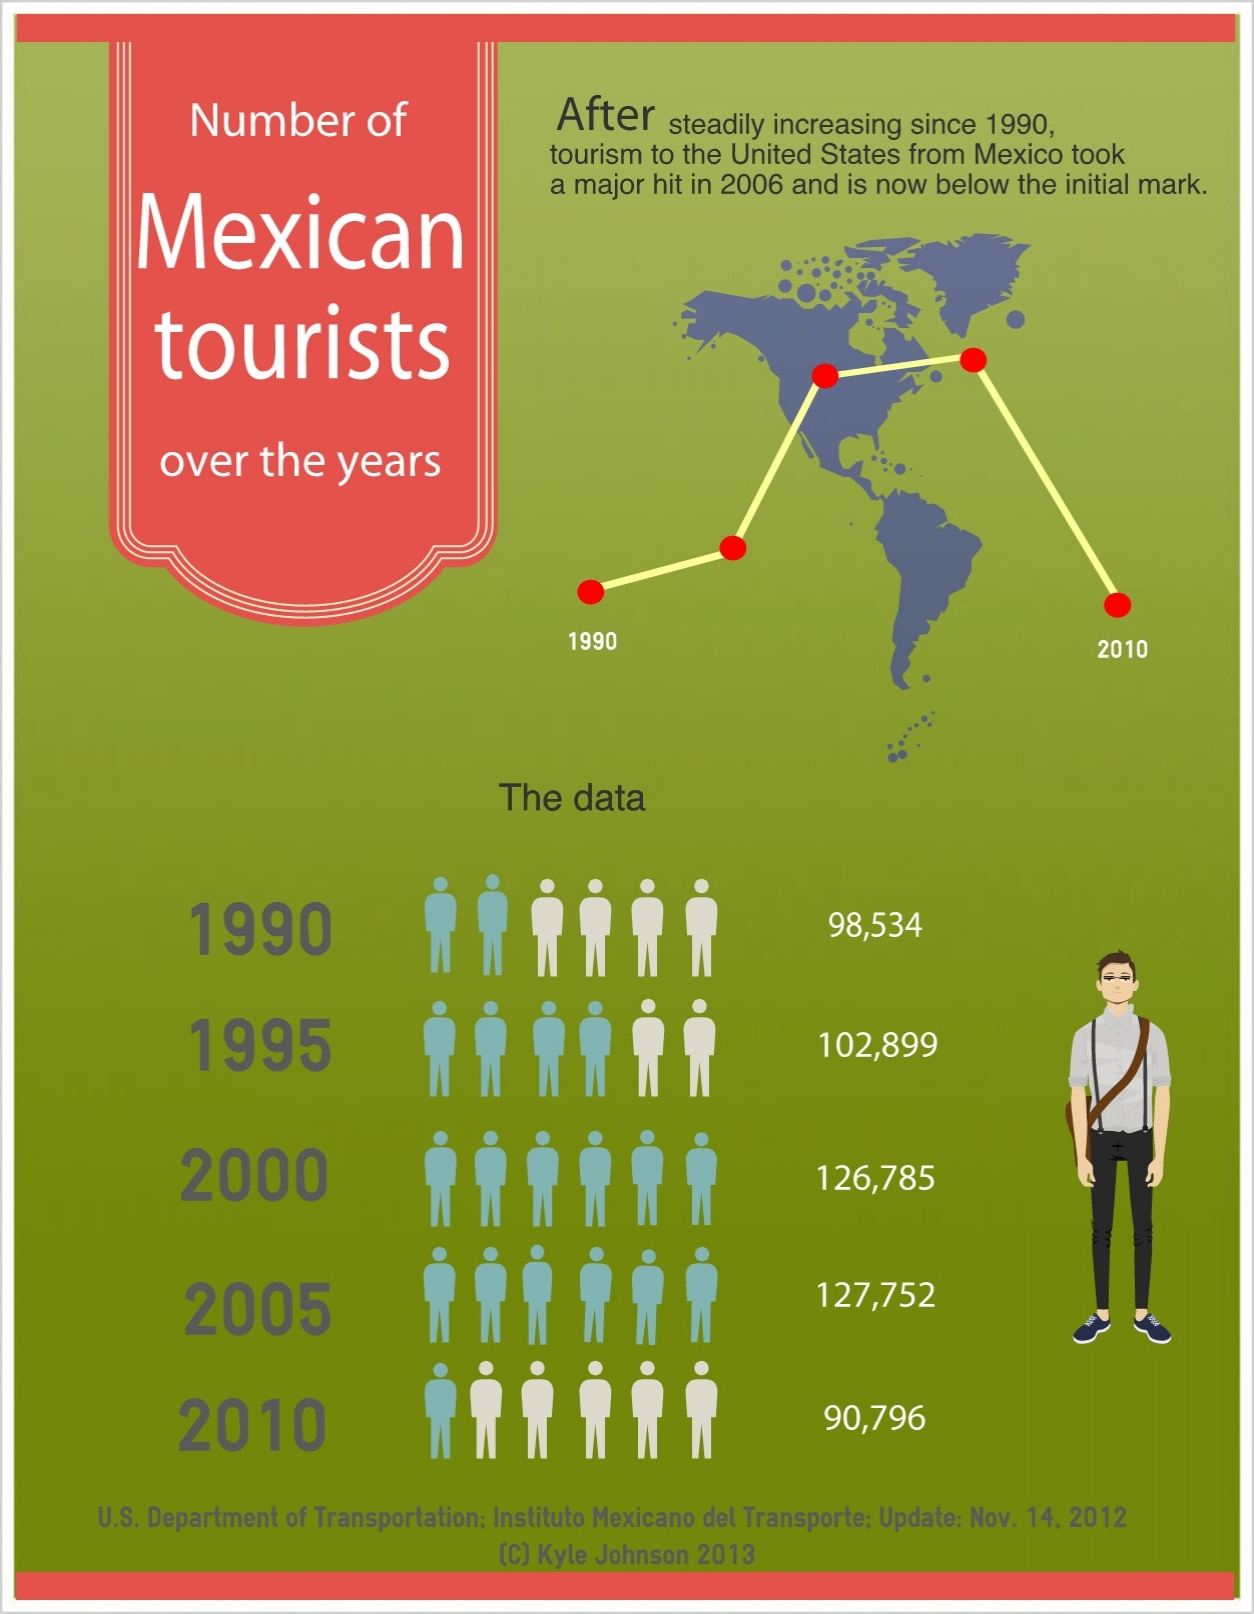 Infographic created by Kyle Johnson 2013